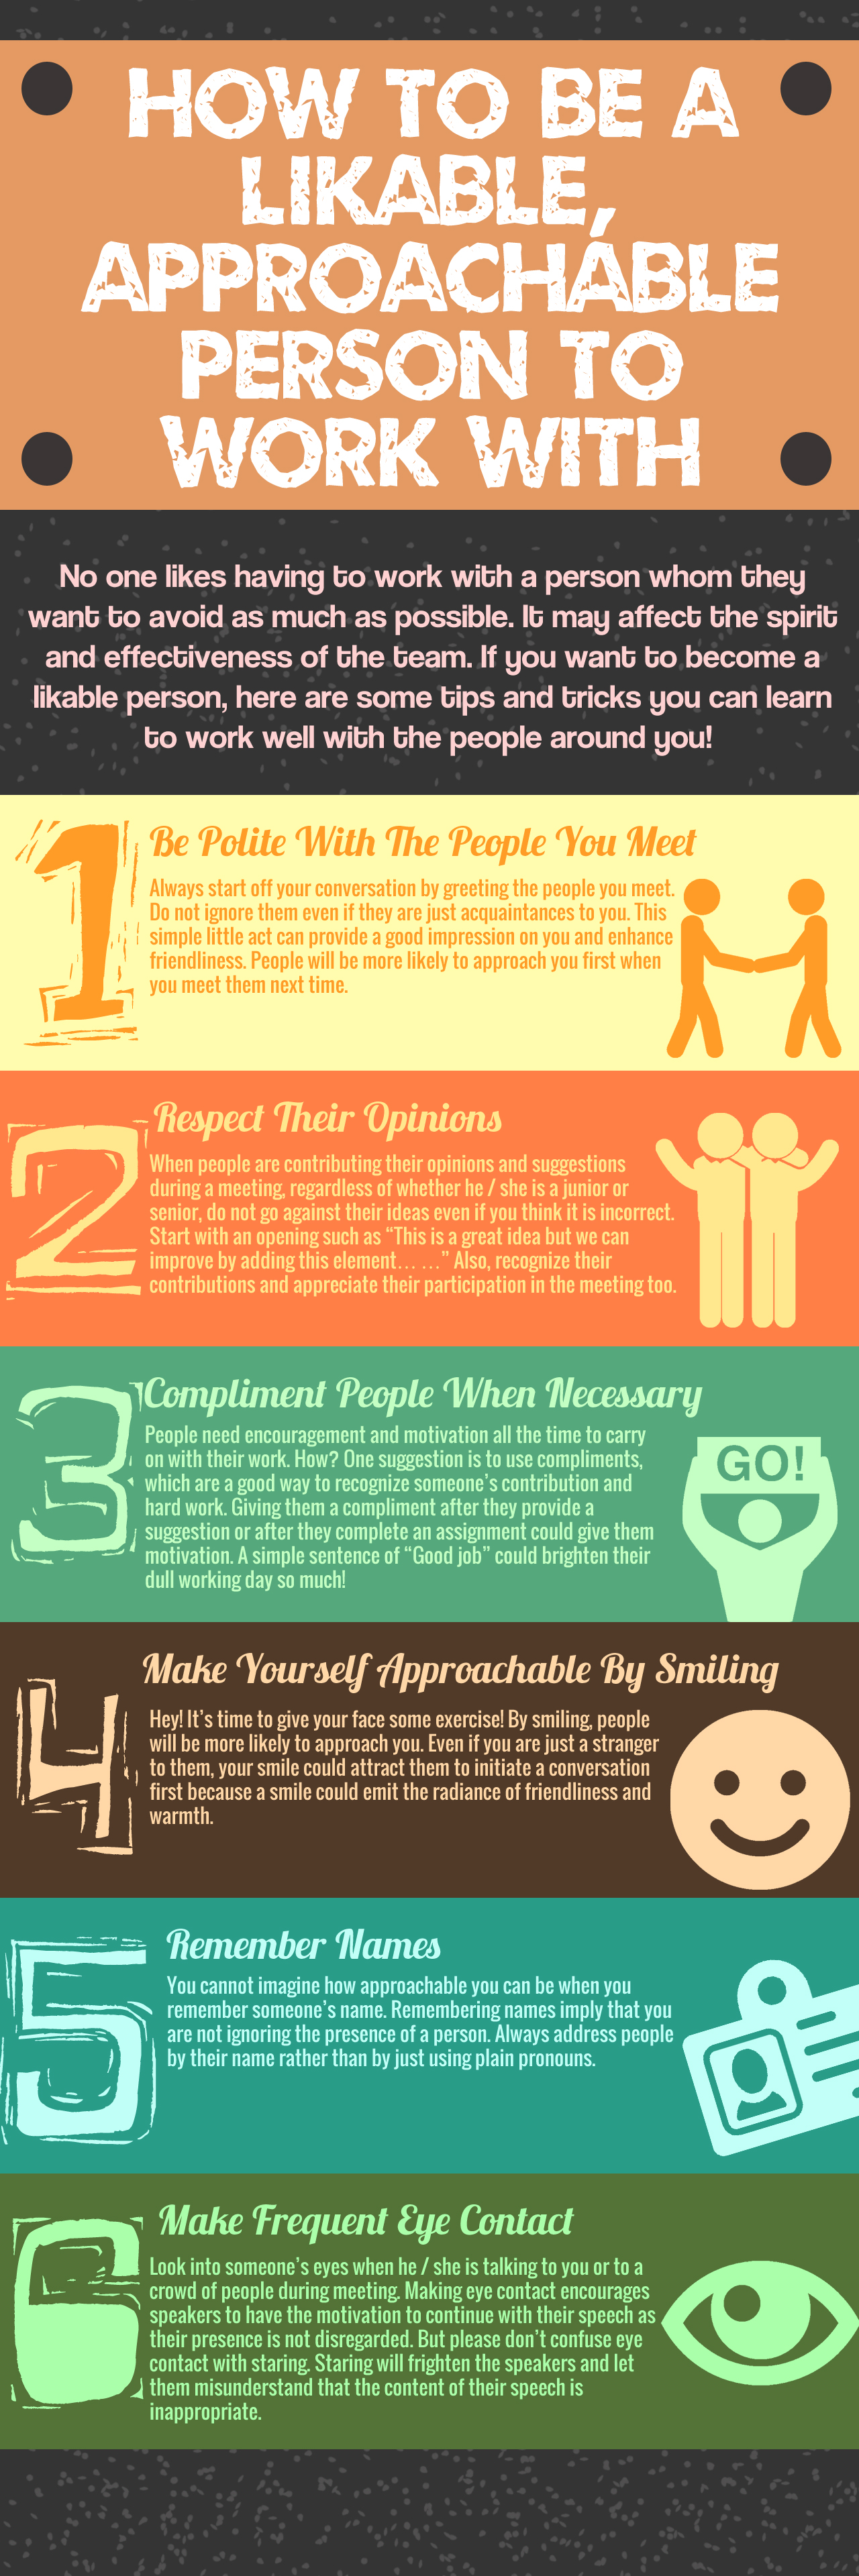 How To Be A Likable Person To Work With?